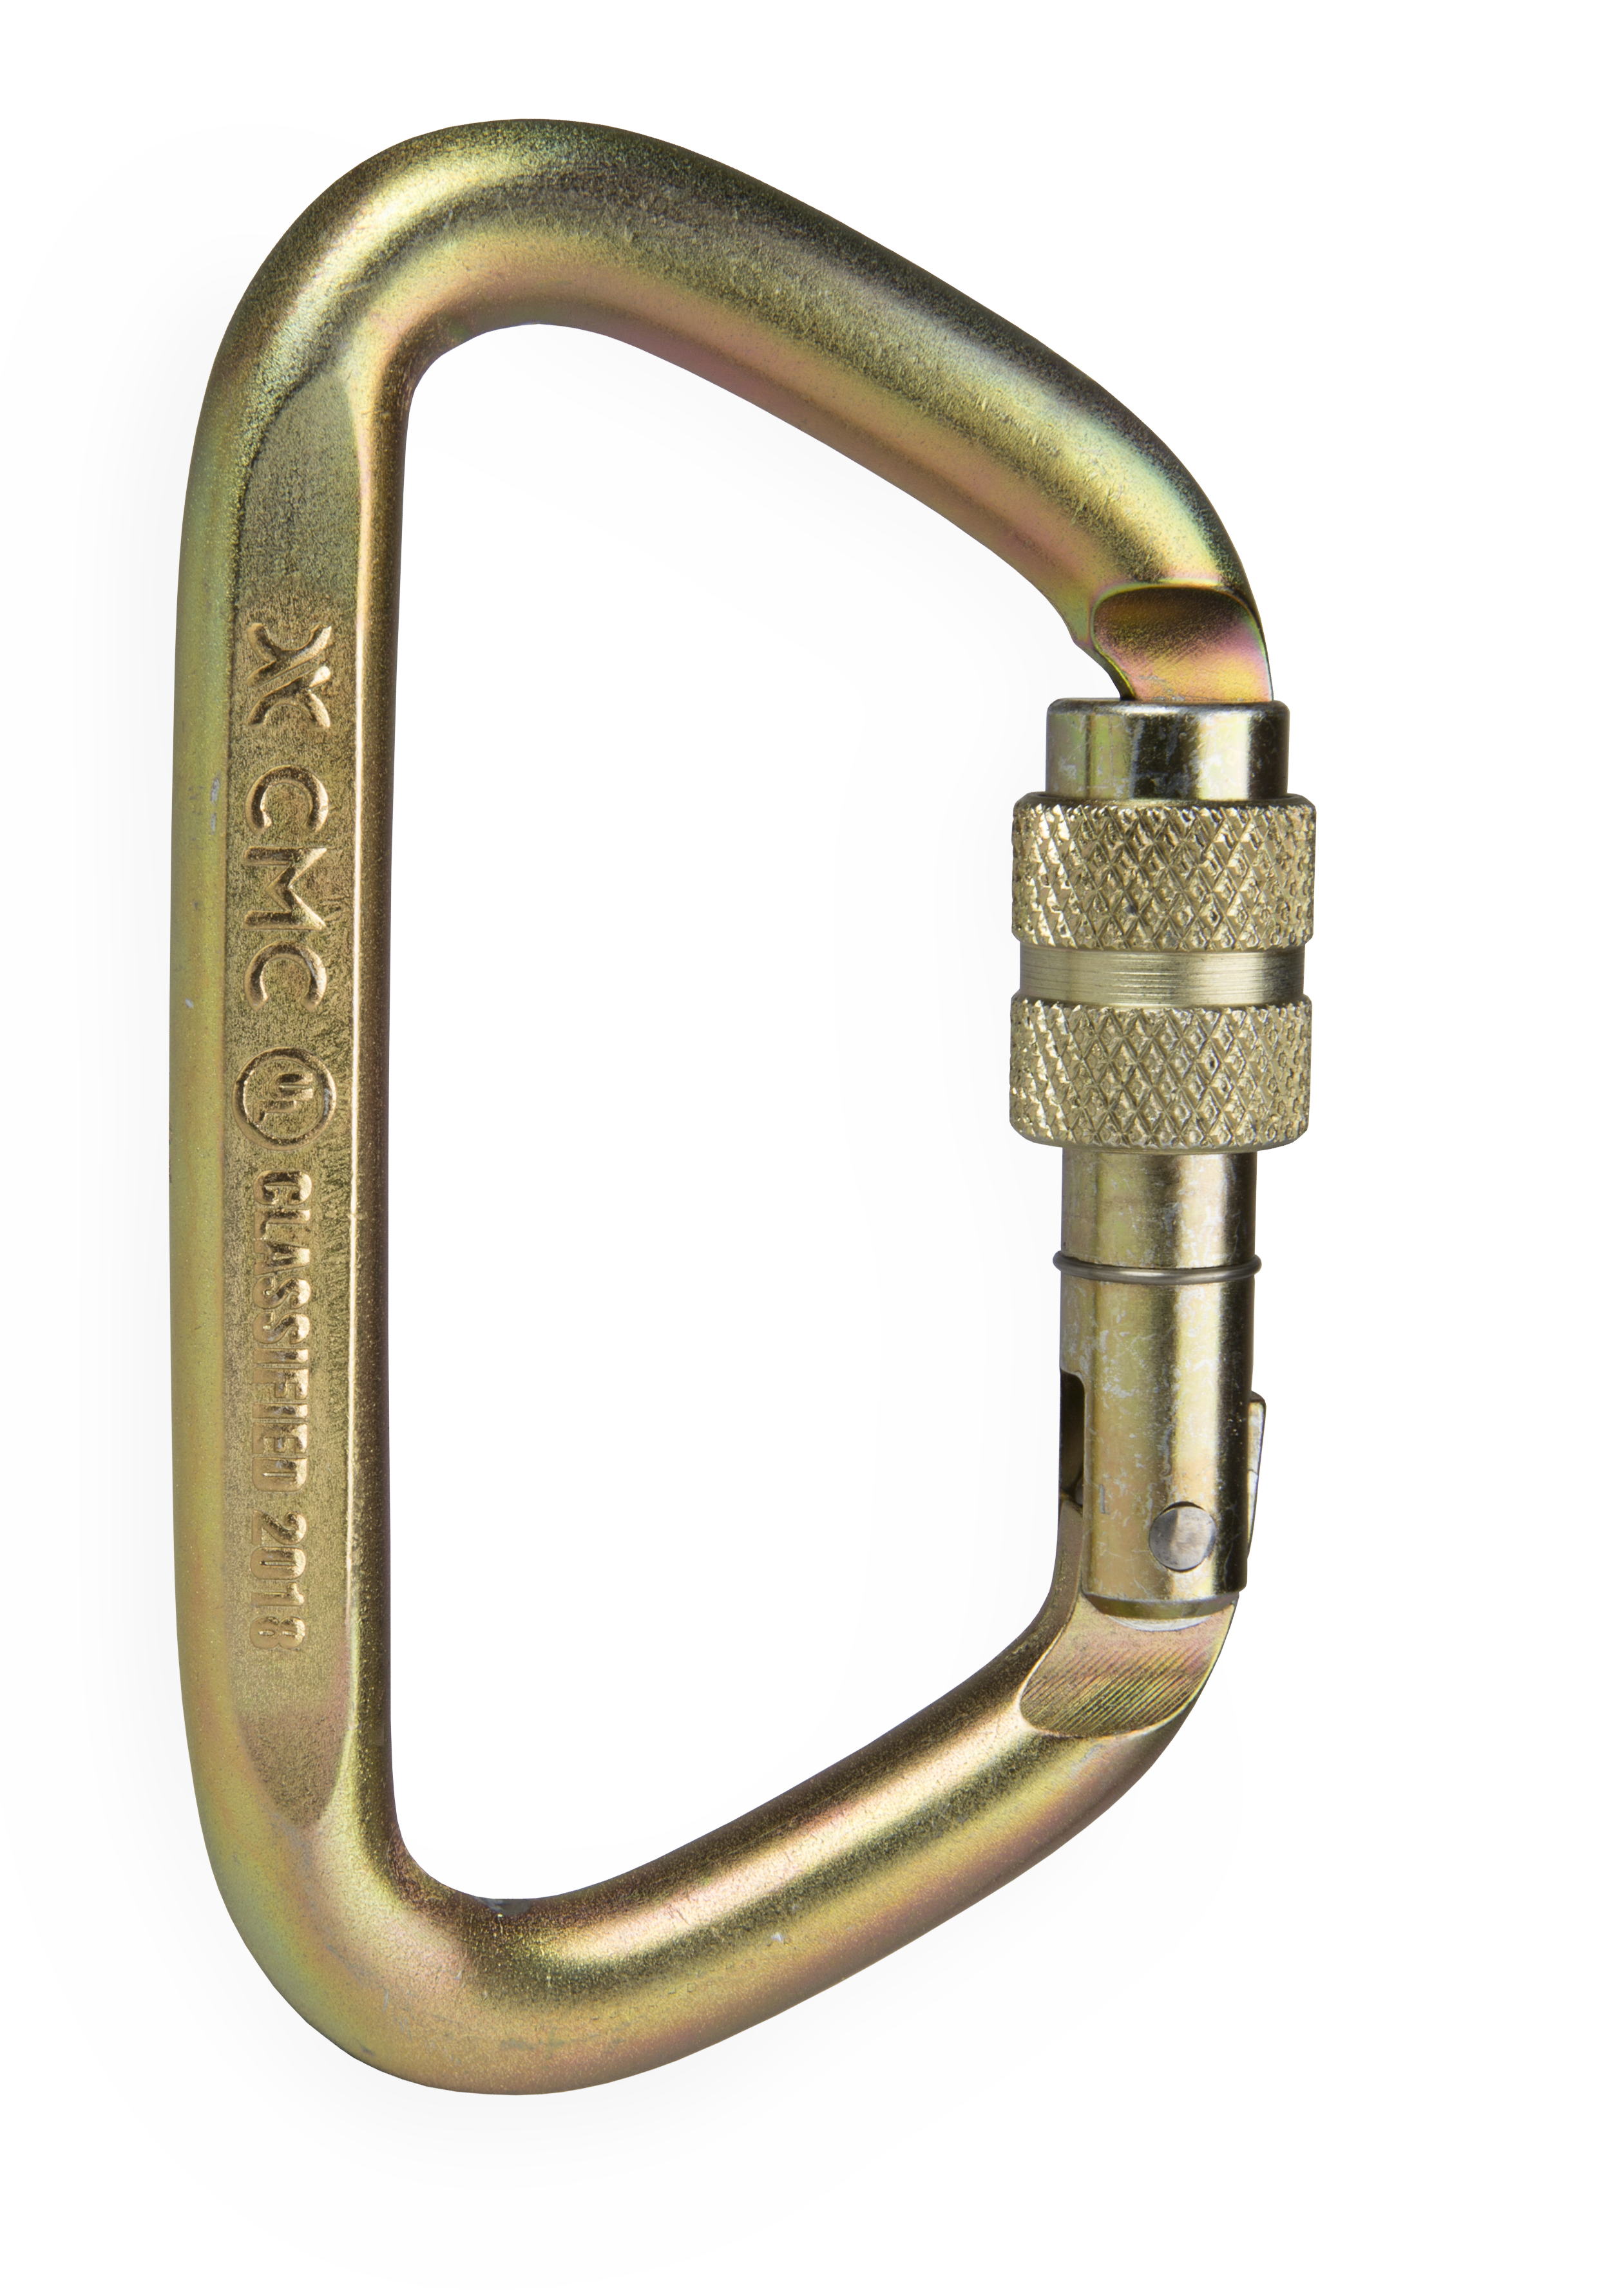 Brass clip carabiner. Carabiners search and rescue